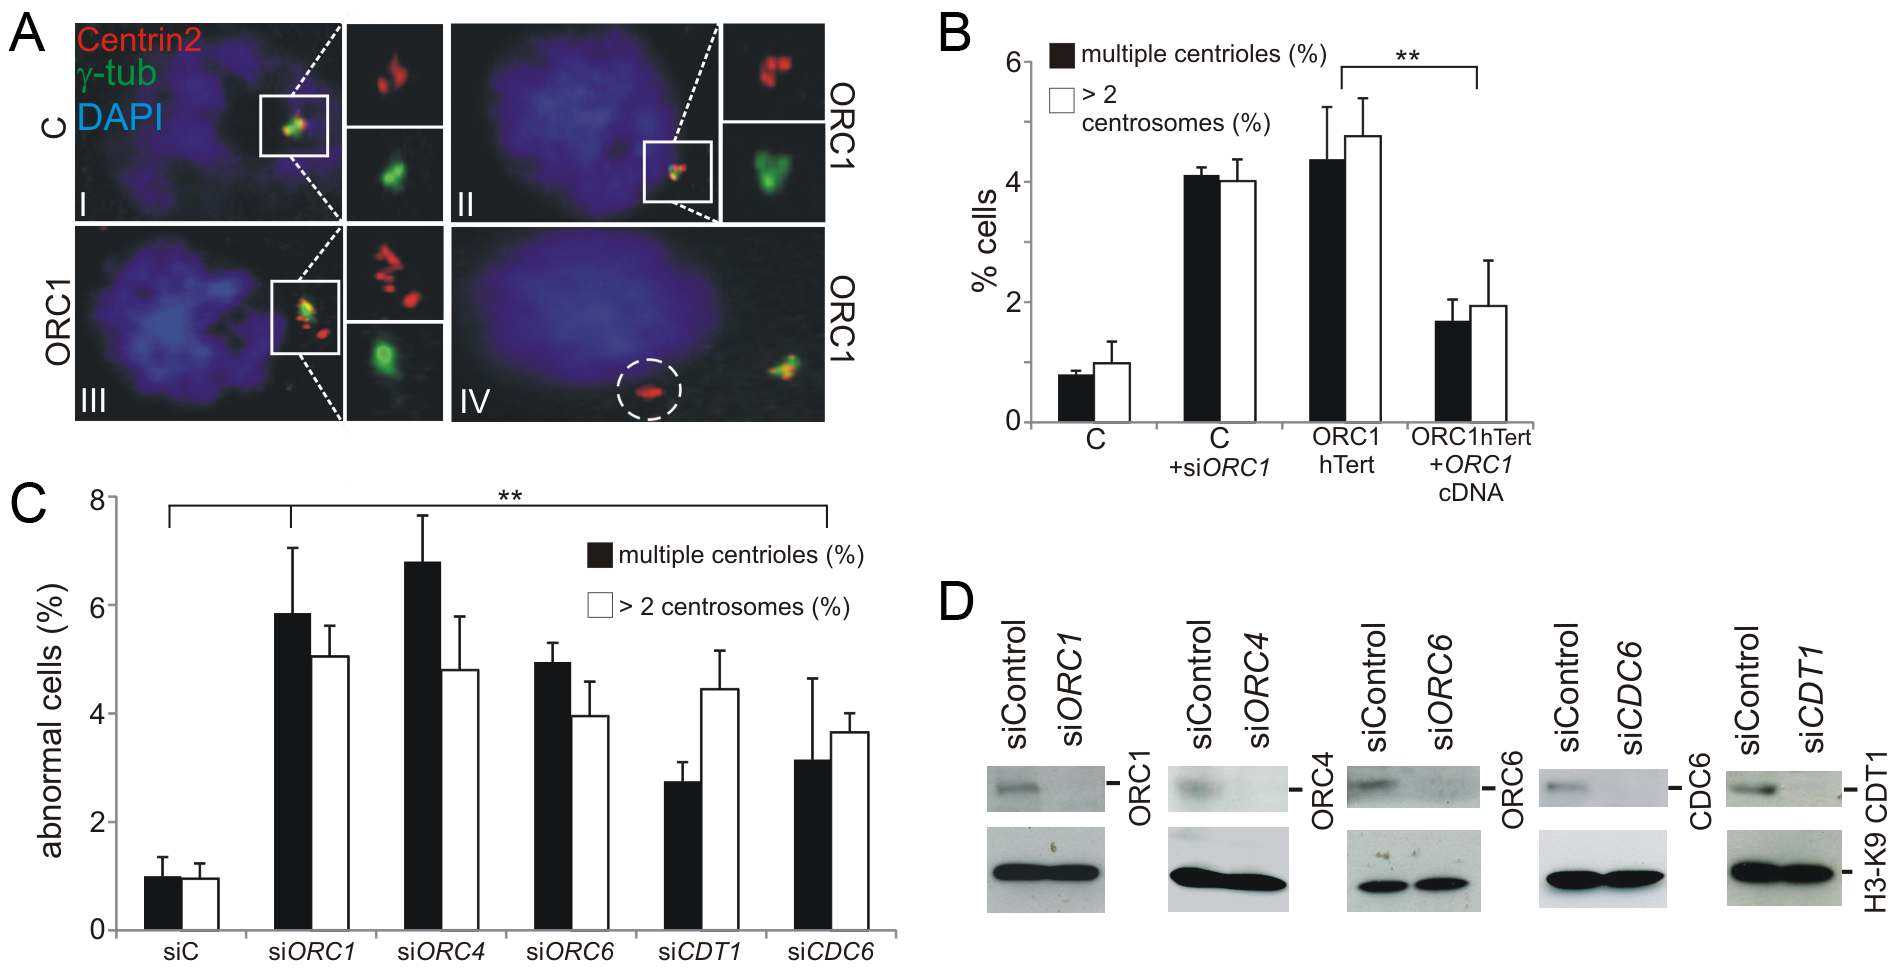 Deficiency in origin licensing proteins results in increased centrosome and centriole copy number.